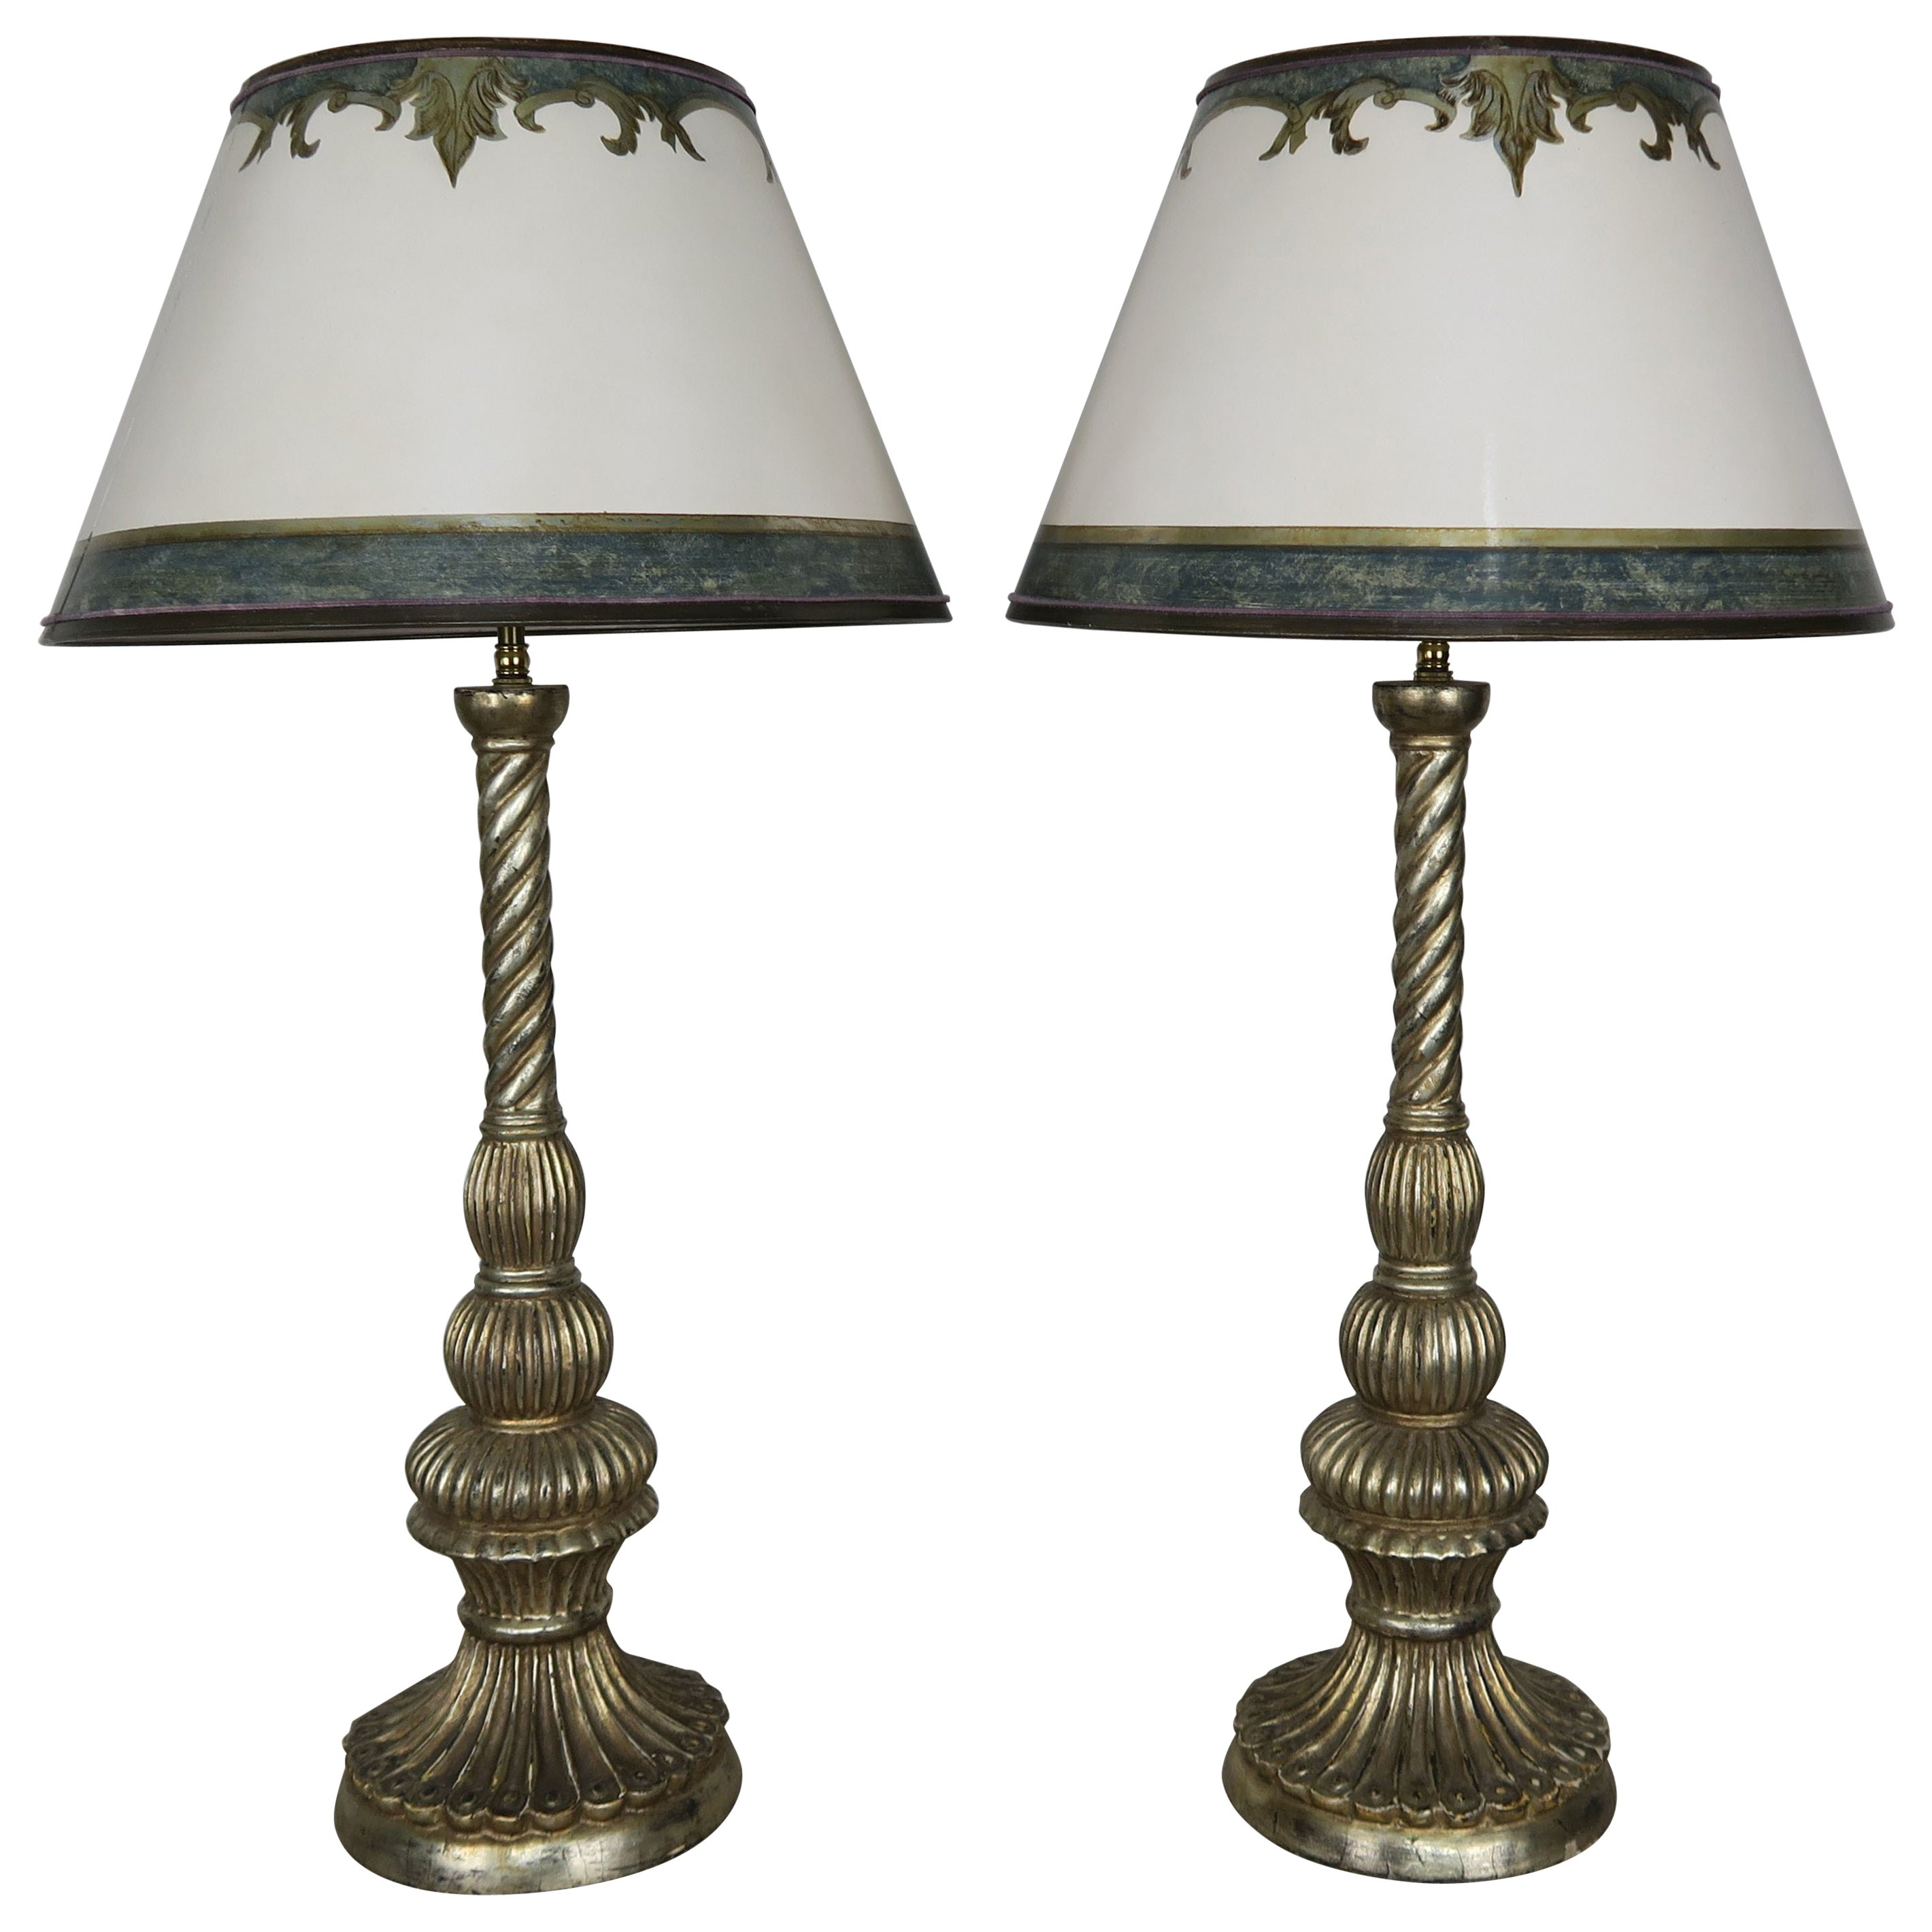 Pair of Carved Italian Borghese Lamps with Parchment Shades